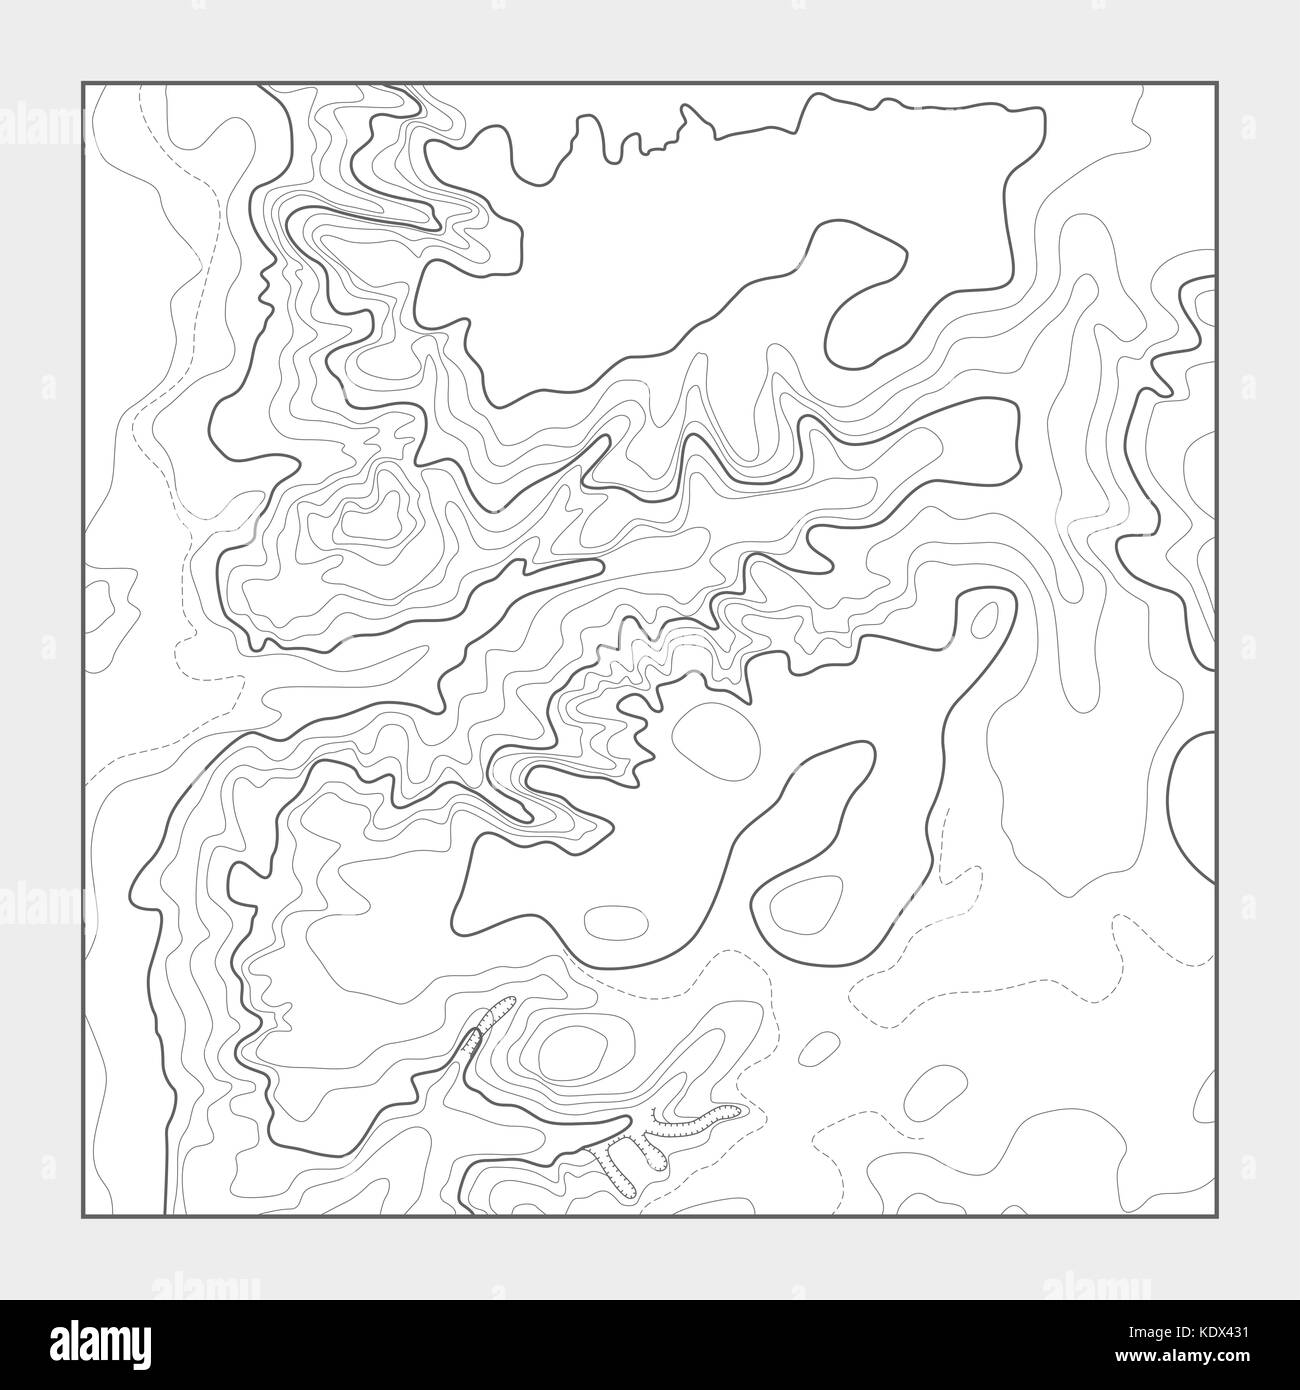 Topographic Map Black And White Stock Photos Amp Images